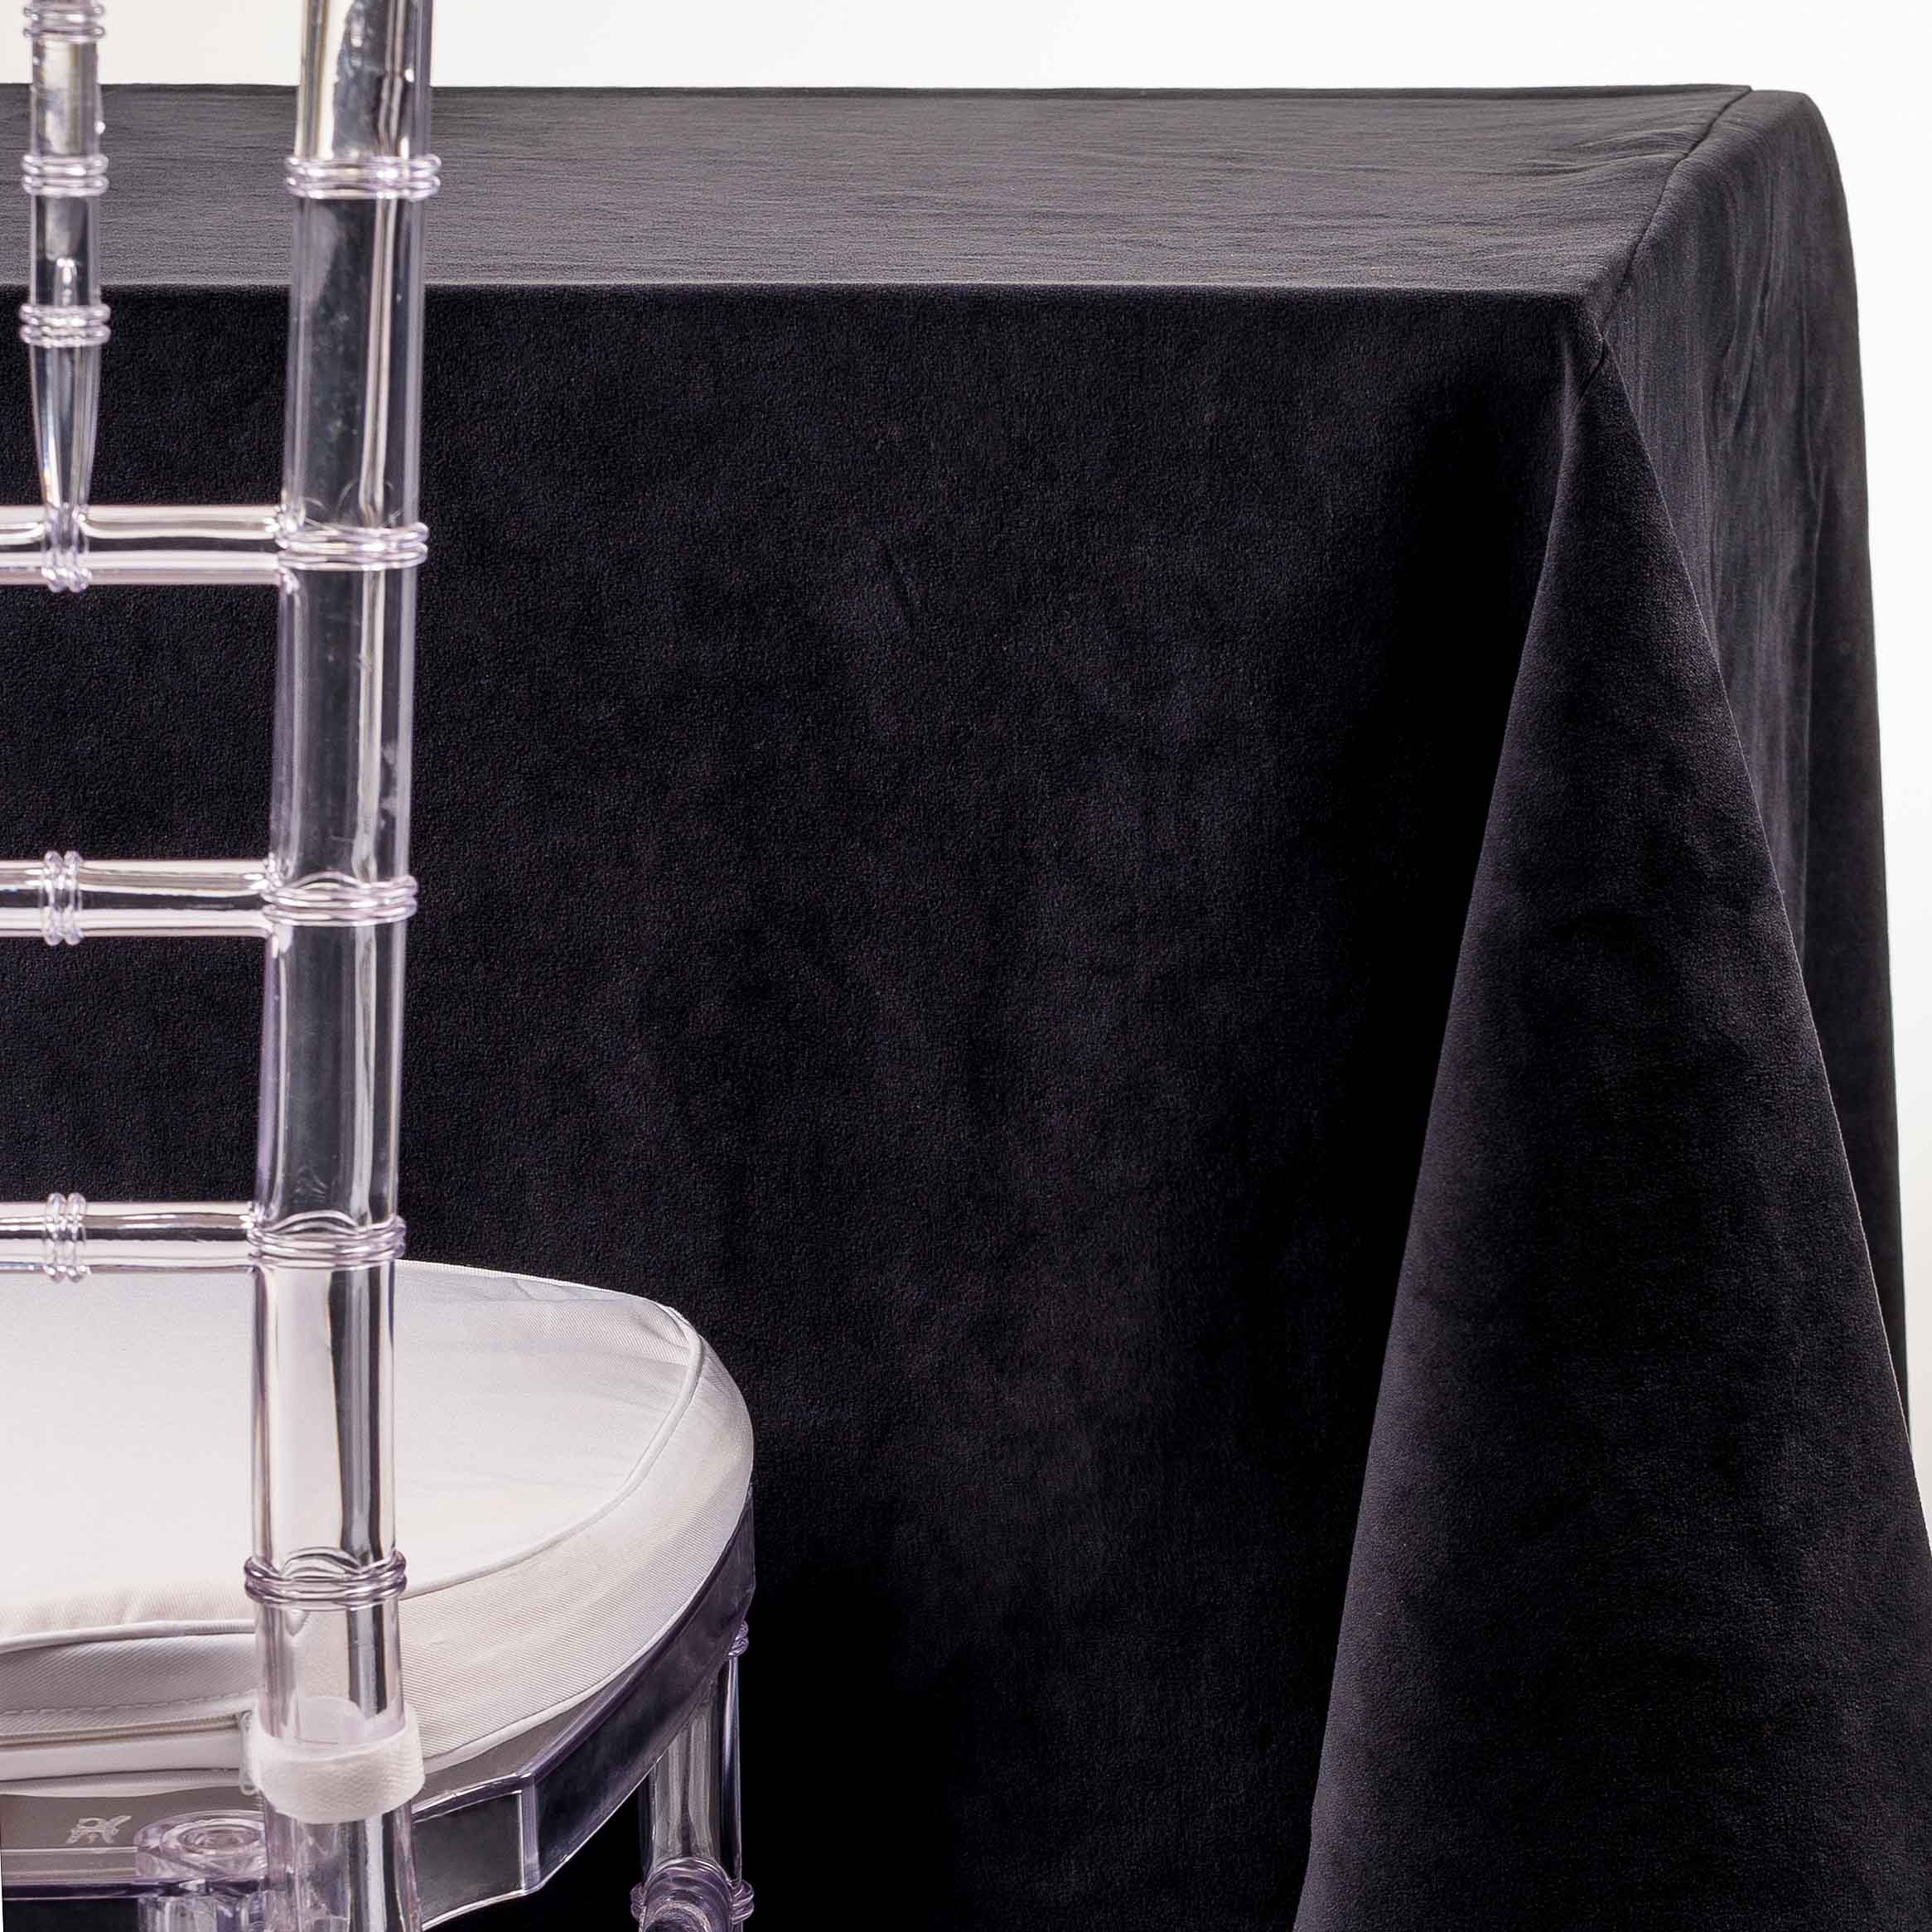 Beau Black Velvet Tablecloth Rentals For Wedding And Party In NJ